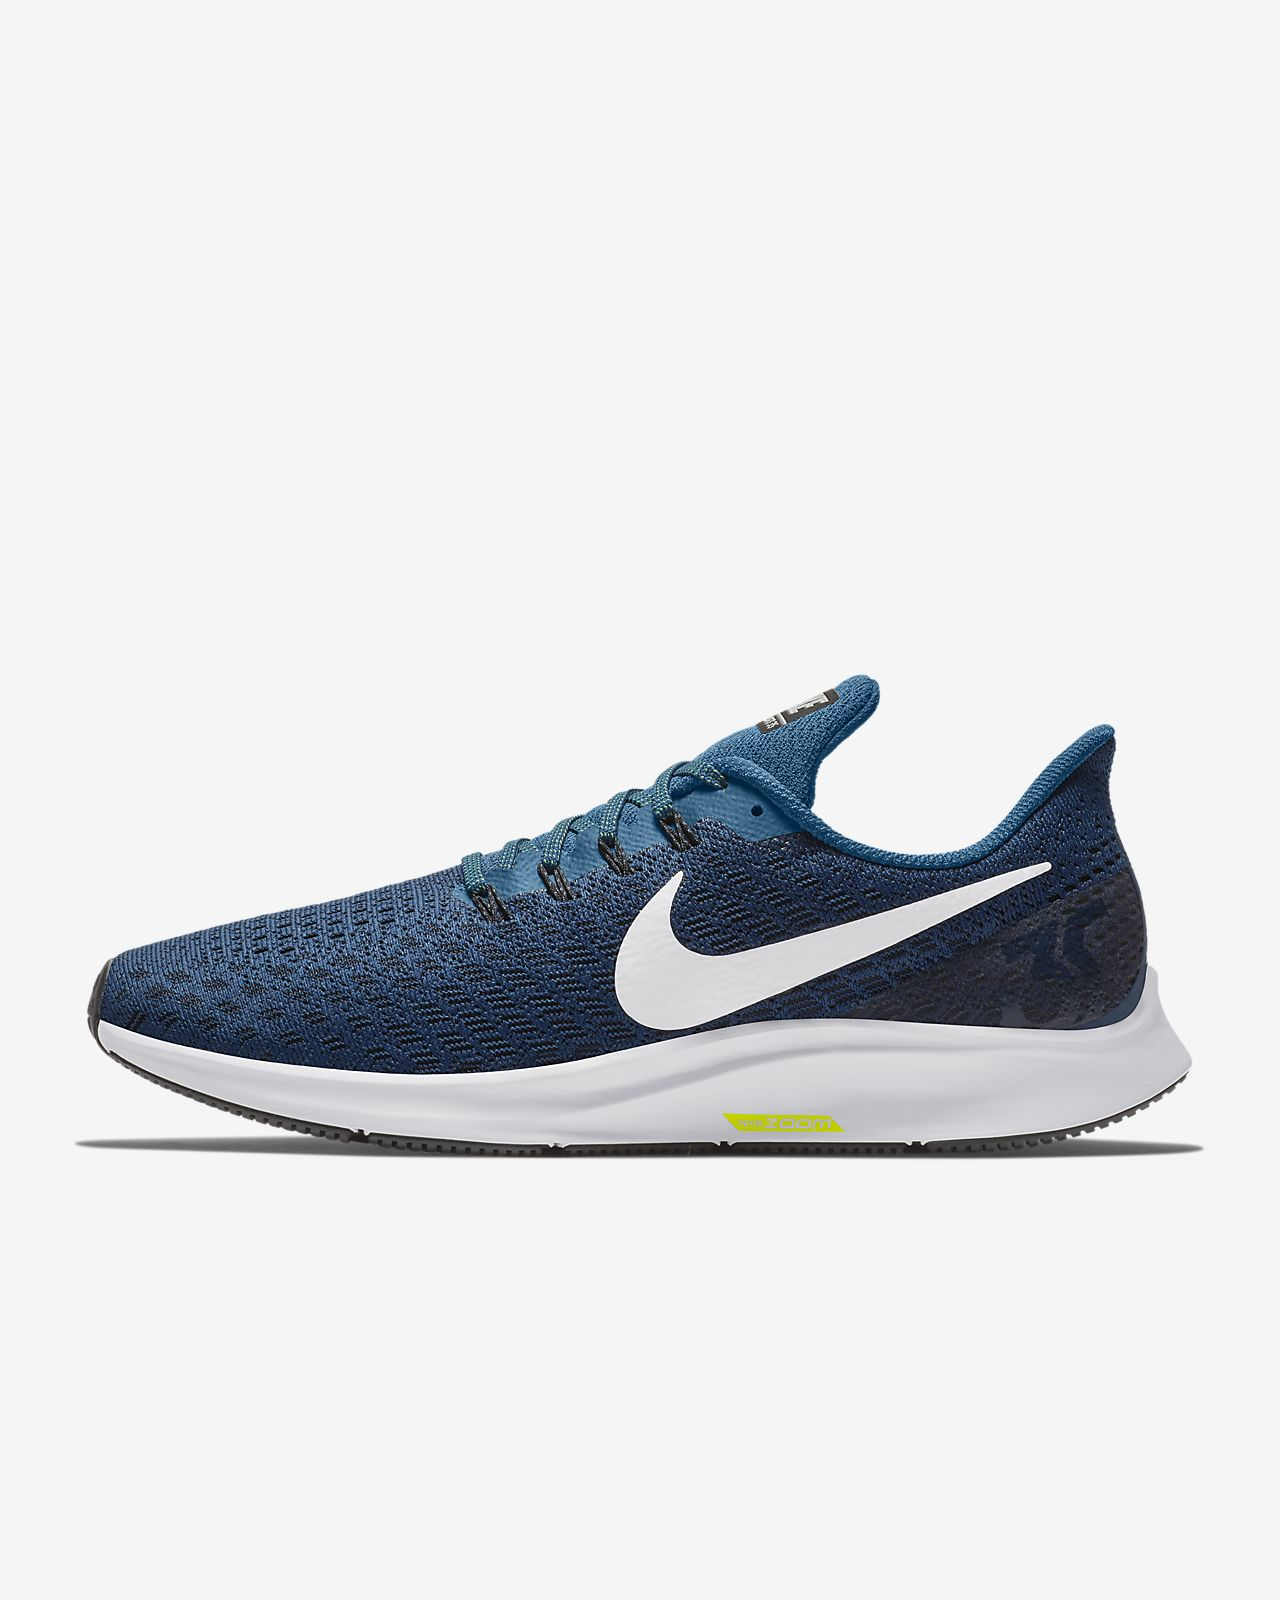 86dc4914269e9 Nike Air Zoom Pegasus 35 Men s Running Shoe. Nike.com NL